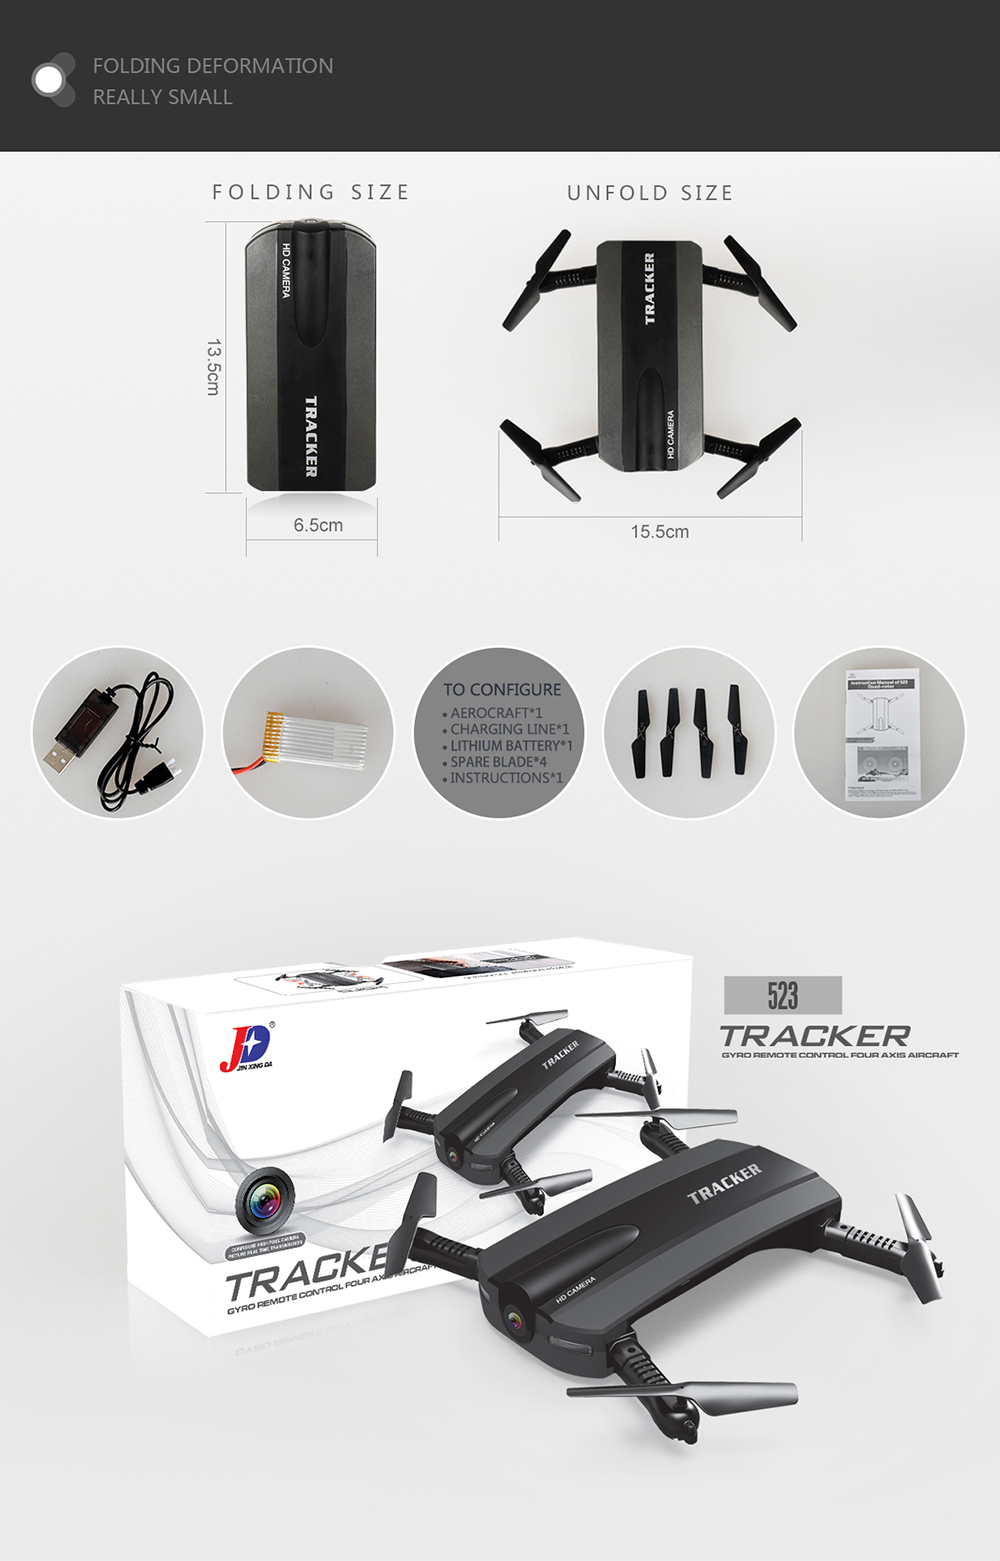 9 JXD 523 JXD523 Mini Foldable drone